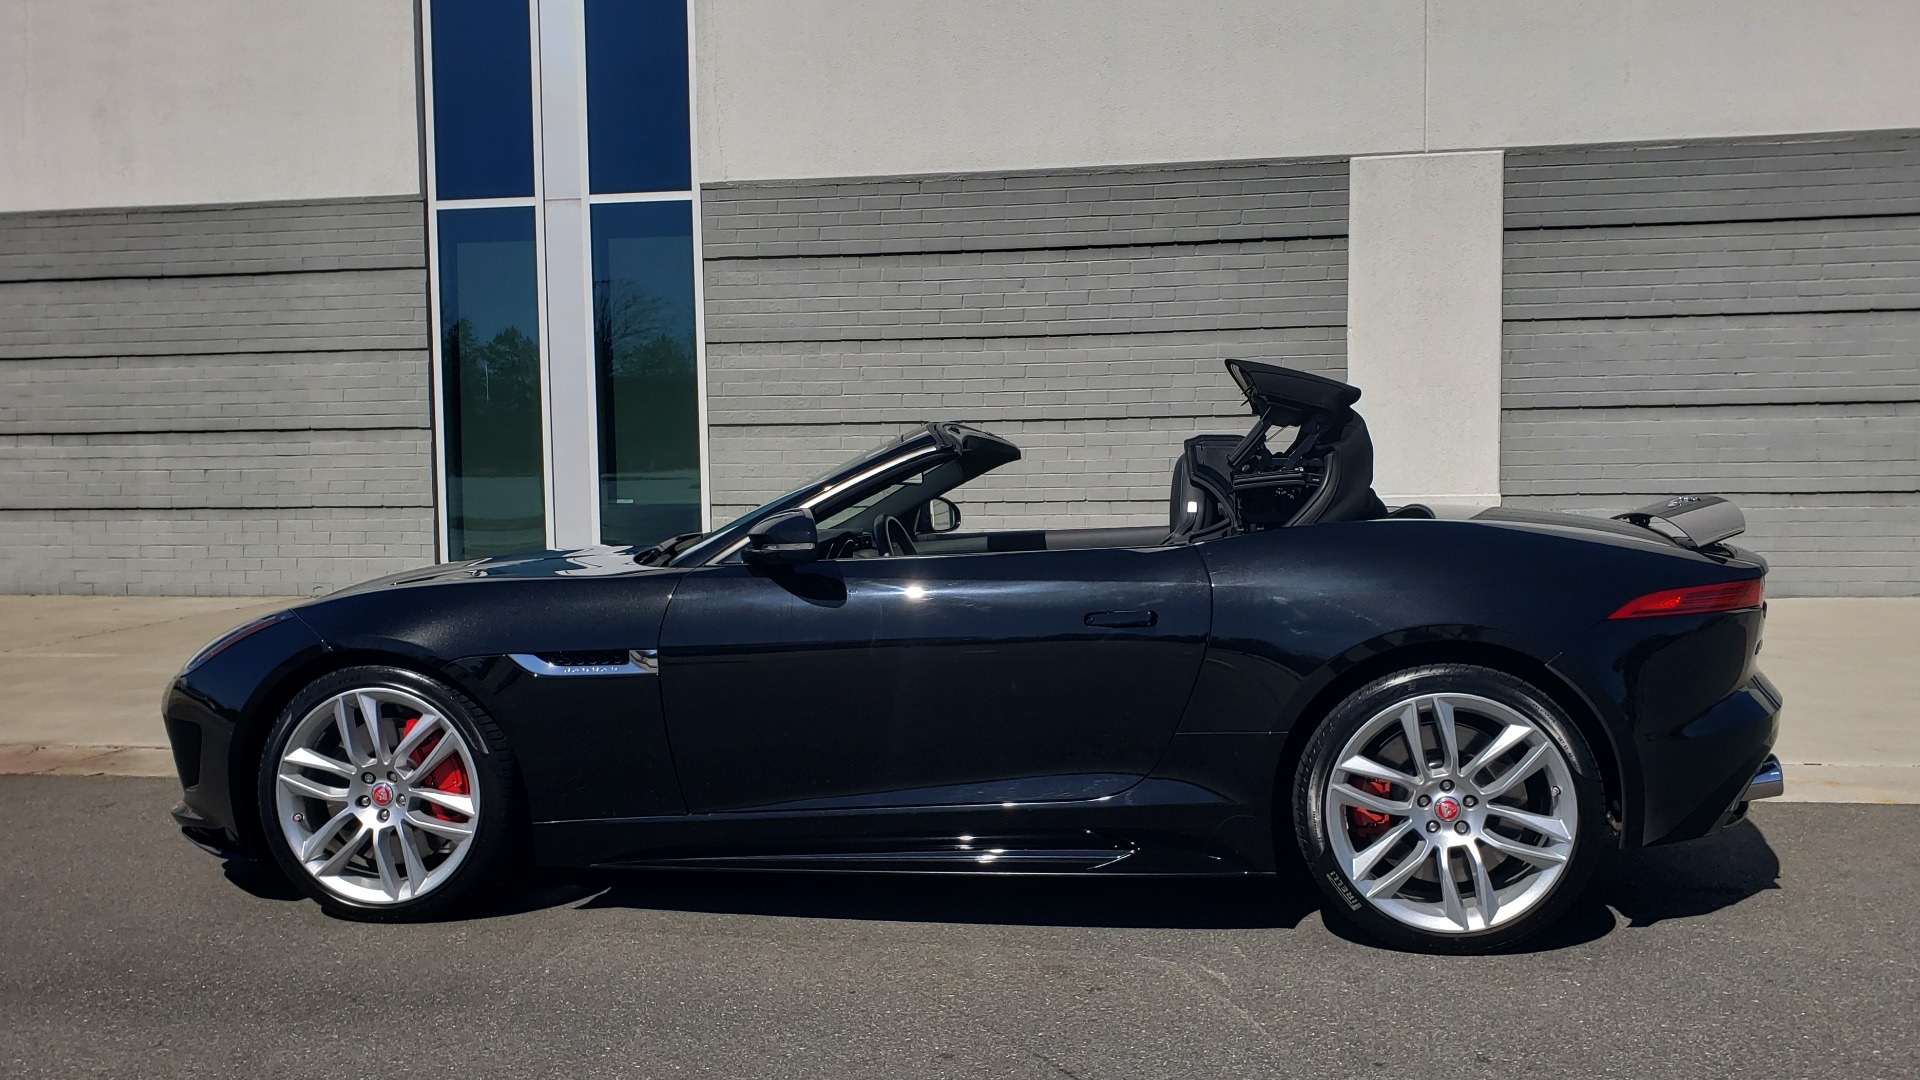 Used 2016 Jaguar F-TYPE R CONVERTIBLE / SC 5.0L 550HP / VISION PACK 3 / BSM / REARVIEW for sale $63,000 at Formula Imports in Charlotte NC 28227 8